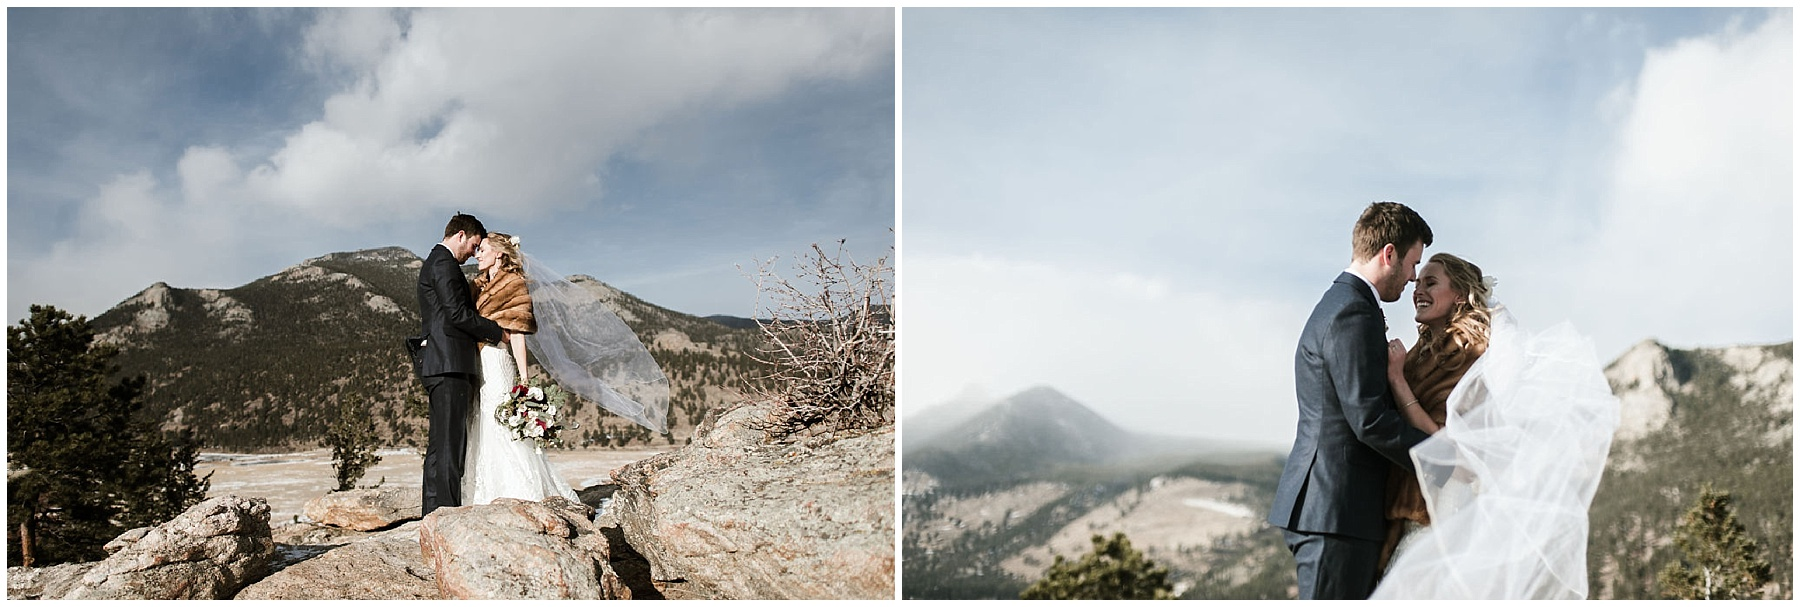 Katesalleyphotography-201_Haley and Dan get married in Estes Park.jpg